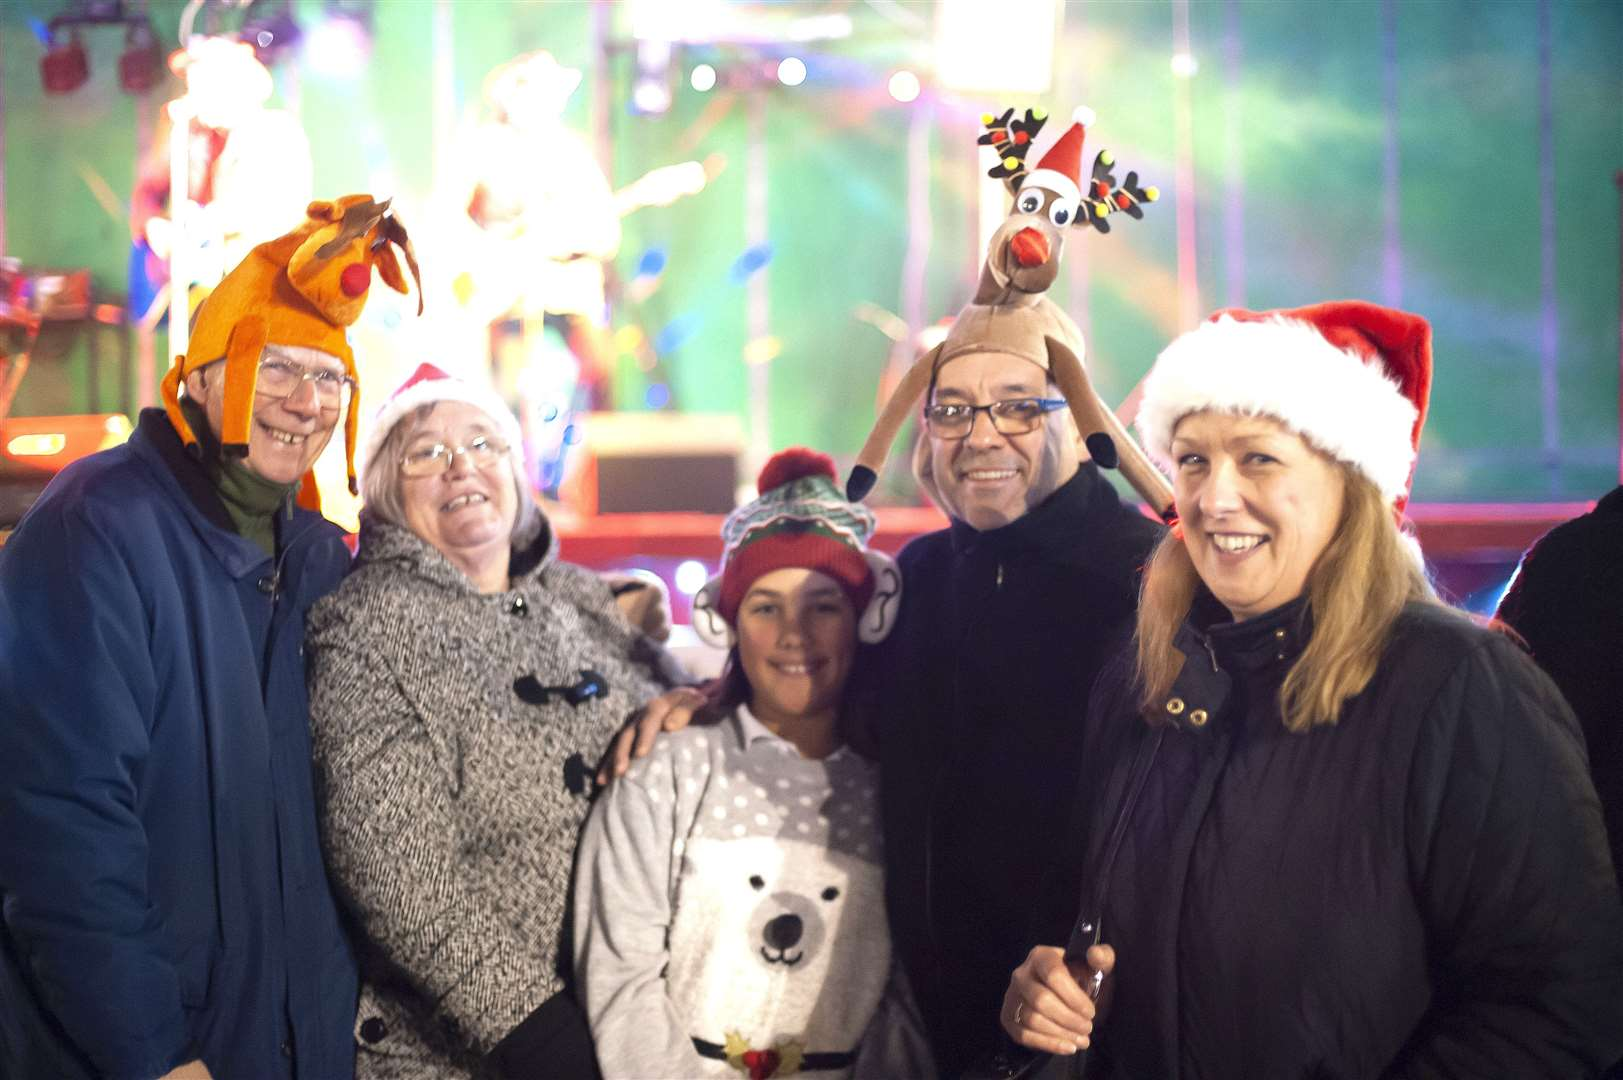 March Town Annual Christmas Lights Switch on. (22957080)